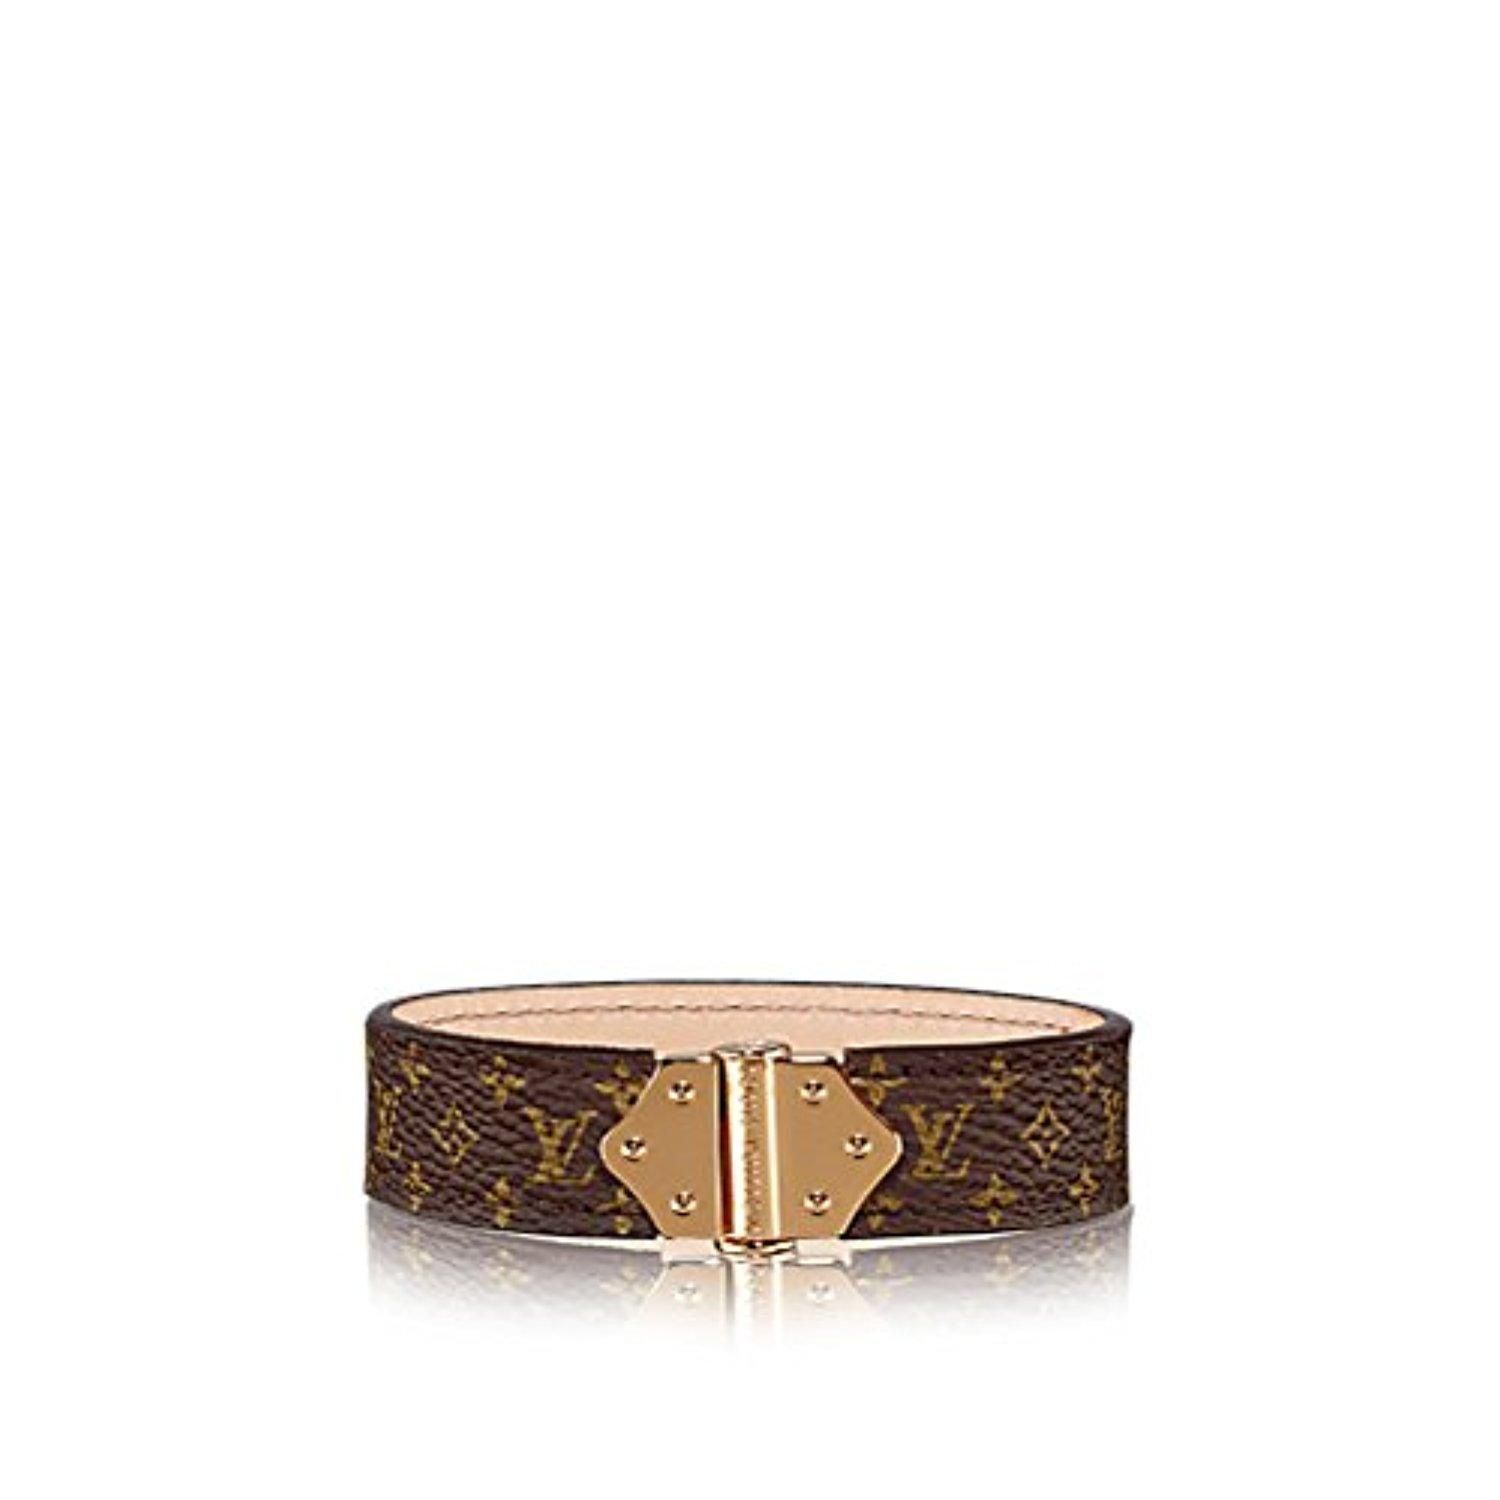 bracelets keep products bracelet monogram accessories it front twice louis leather vuitton eng us